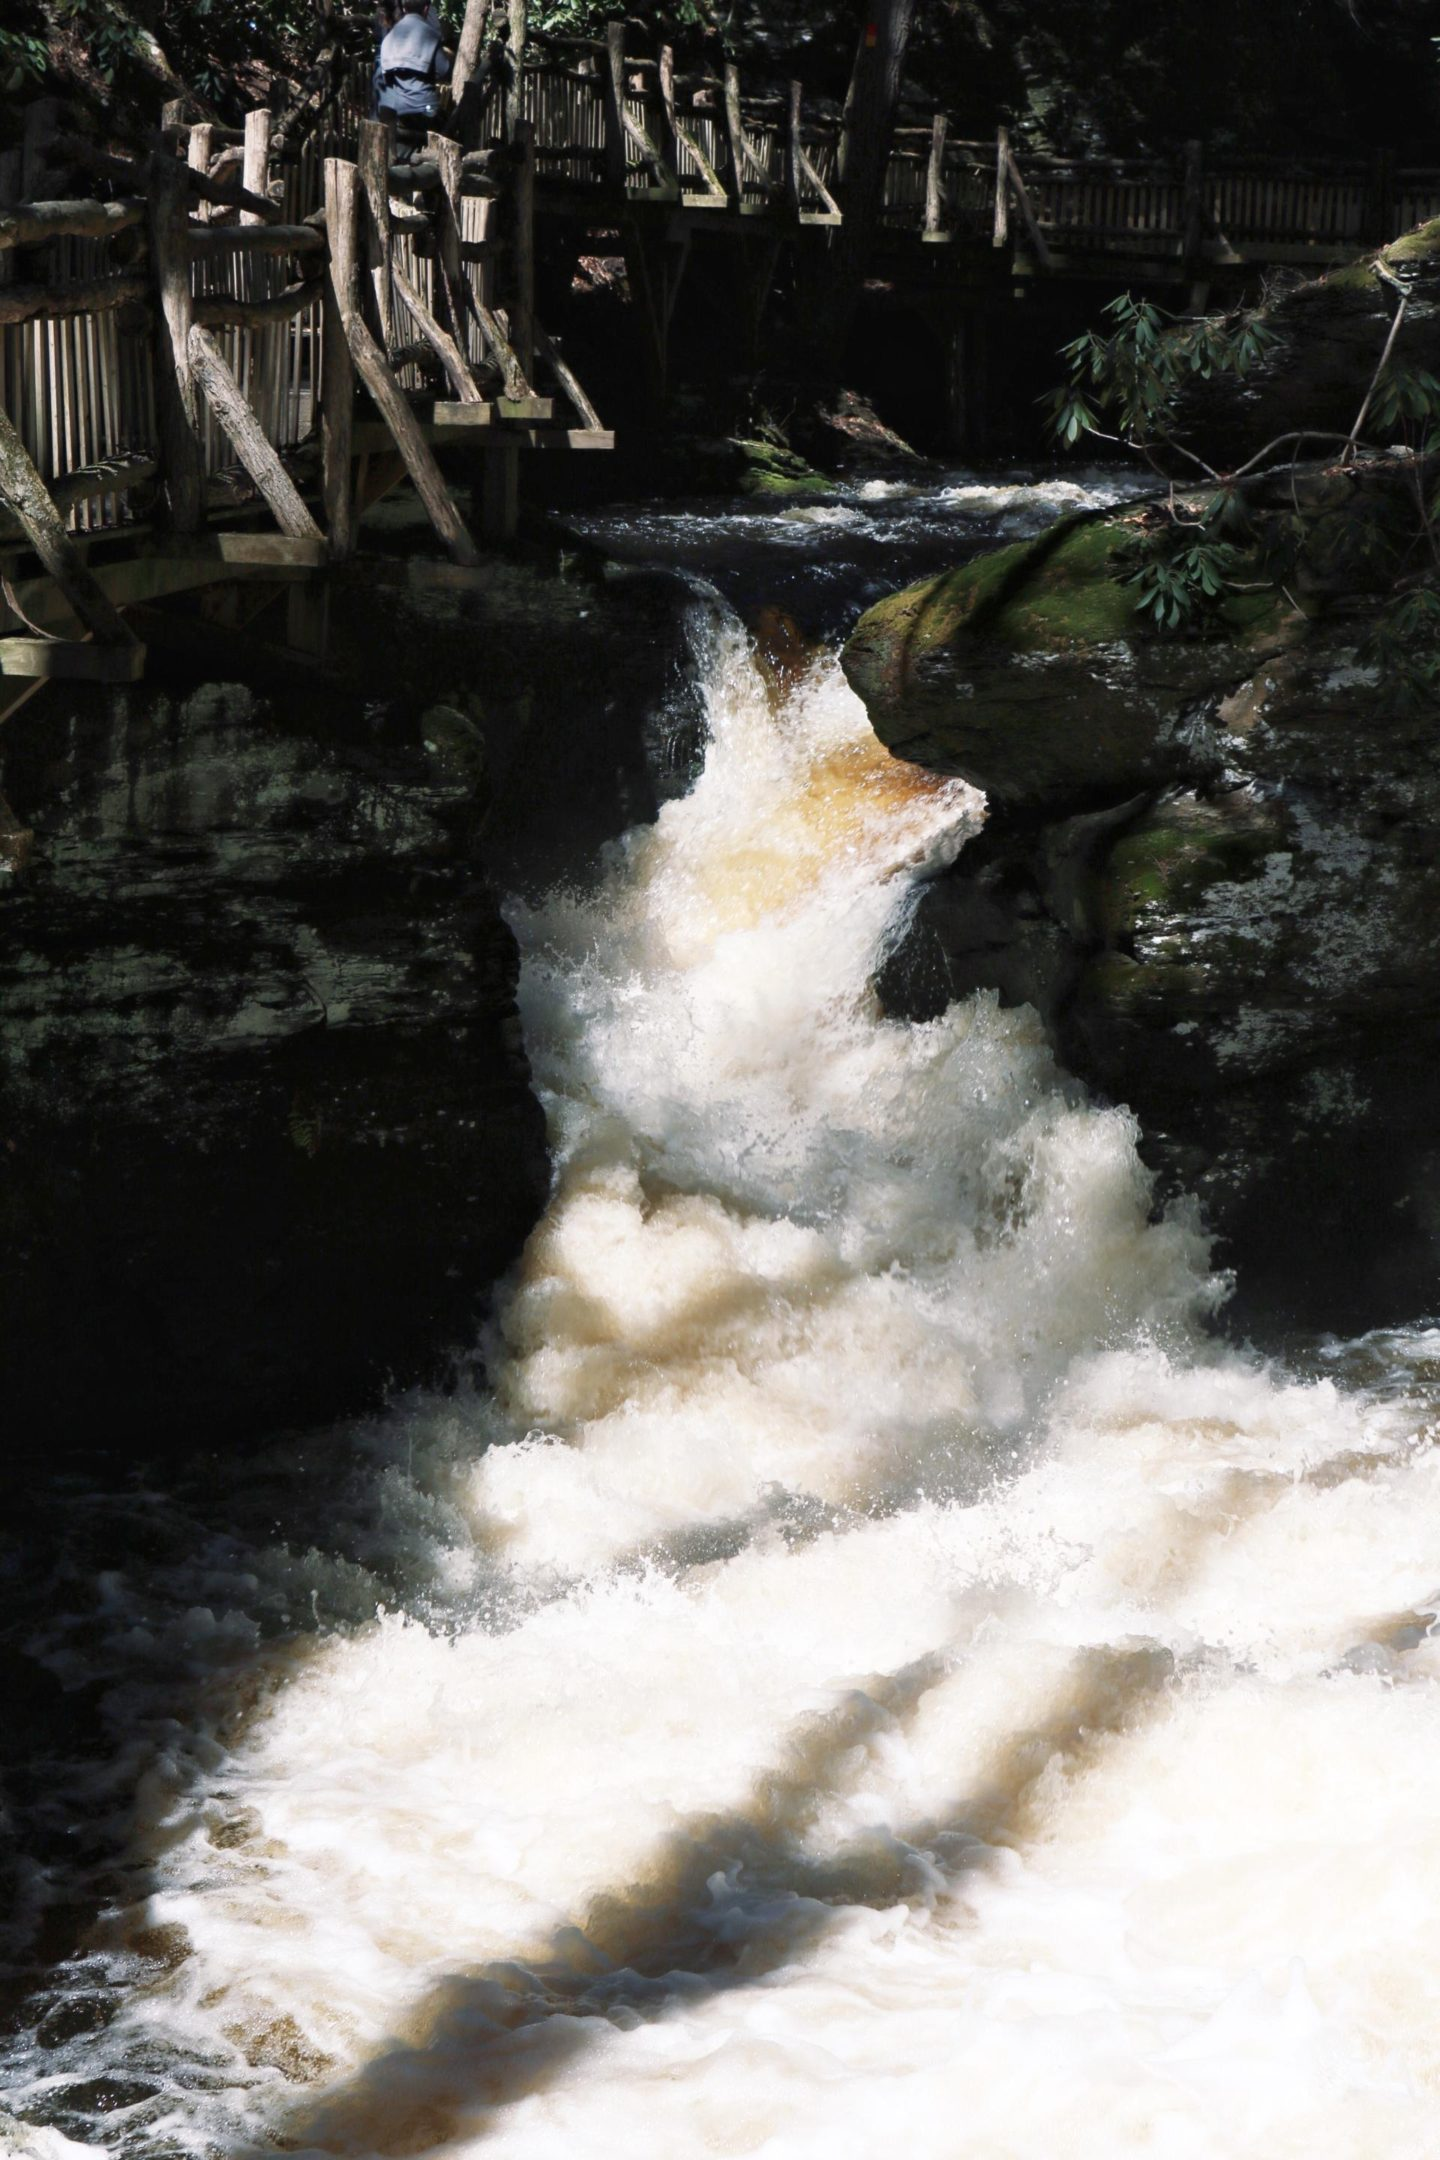 day trip to bushkill falls